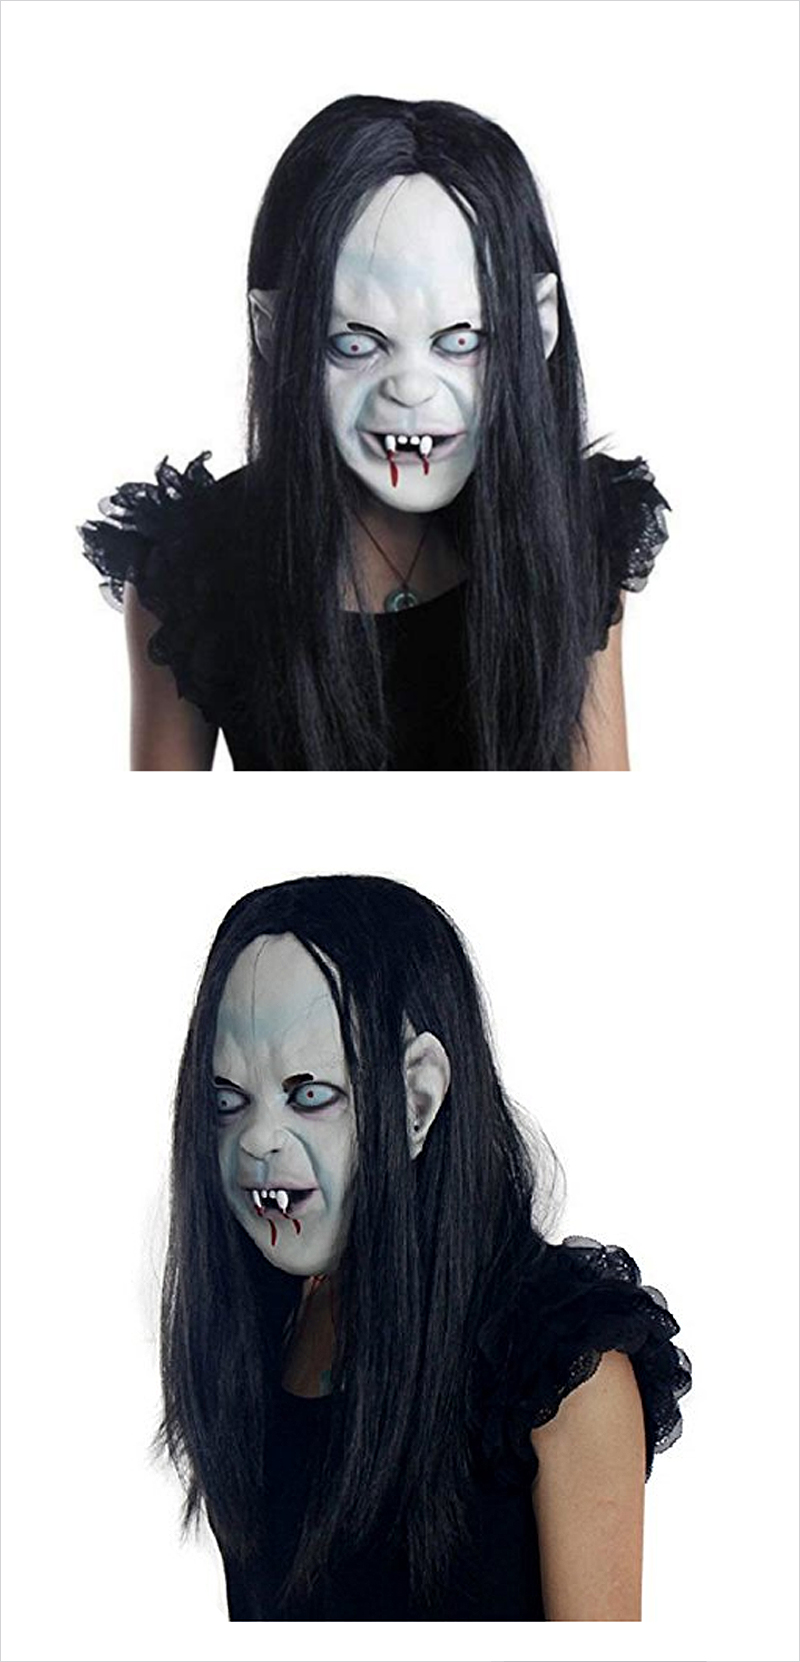 Halloween-Horror-Ghost-Mask-Scary-Zombie-Emulsion-Skin-with-Hair